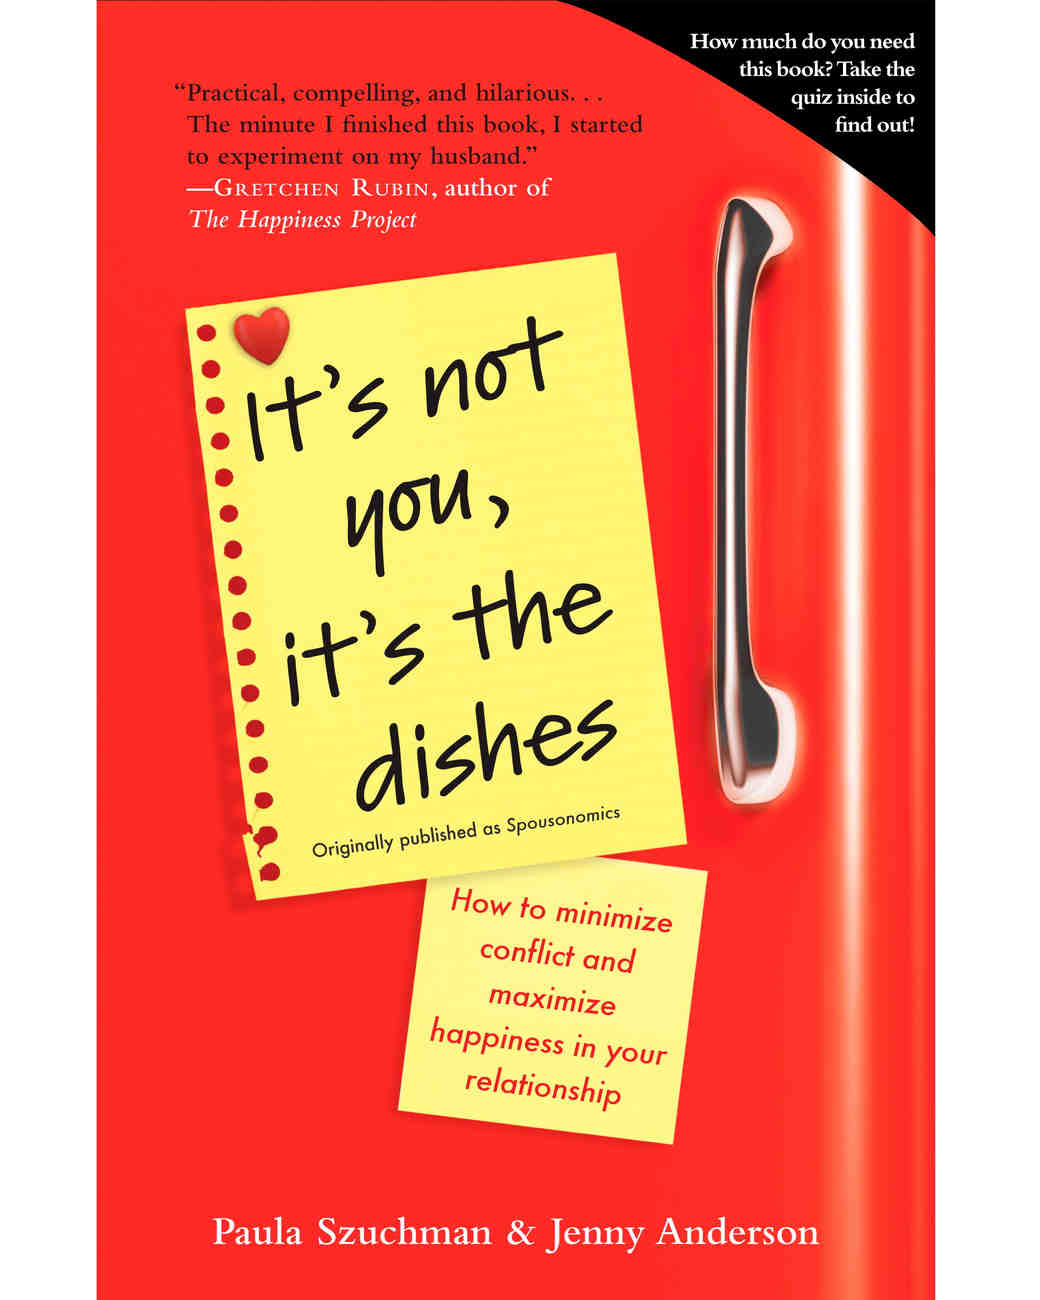 books-read-before-marriage-its-not-you-its-dishes-szuchman-anderson-0115.jpg